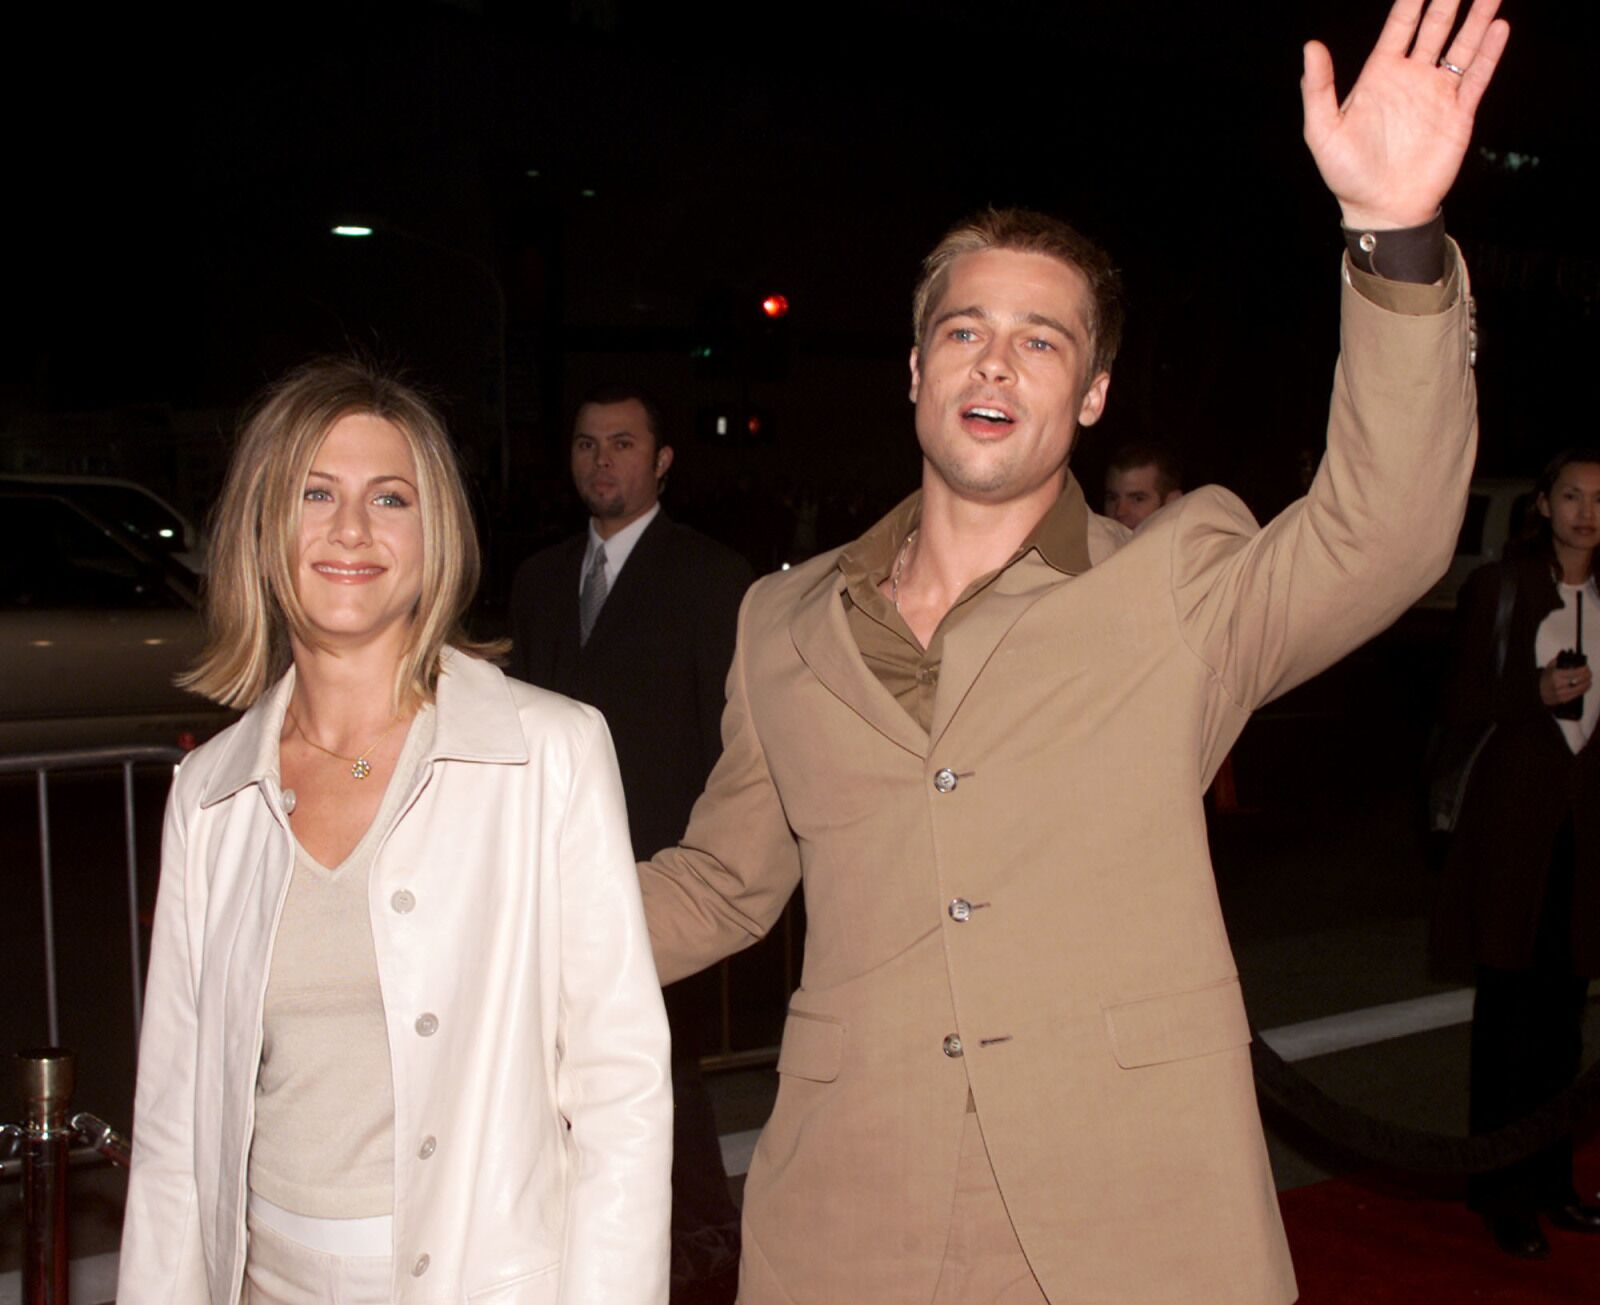 Jennifer Aniston, Brad Pitt rumors swirl as Angelina Jolie's ex cuddles with actress